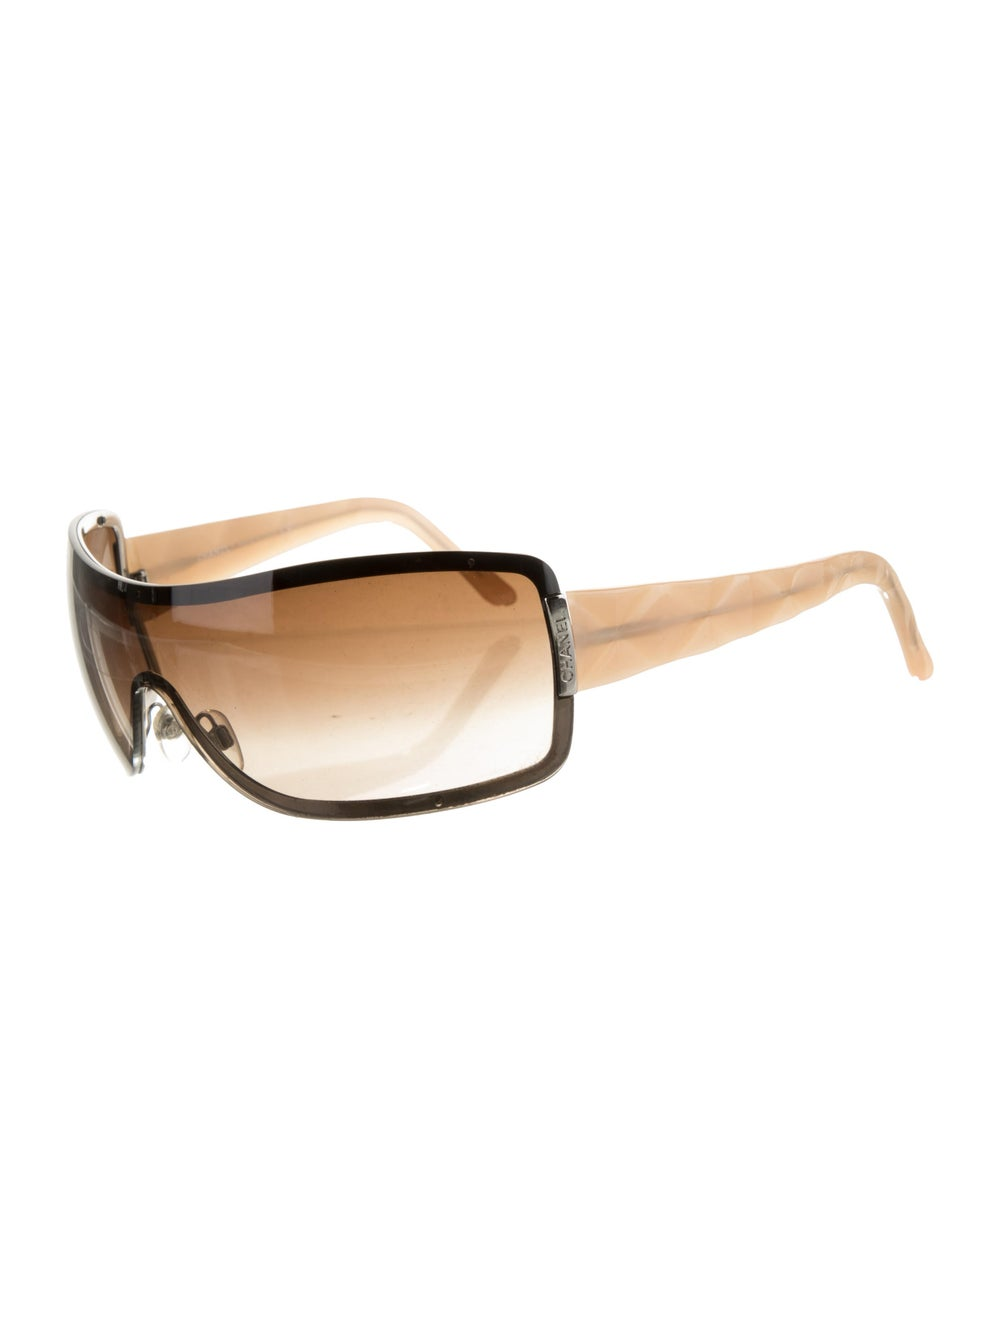 Chanel Quilted Shield Sunglasses Champagne - image 2